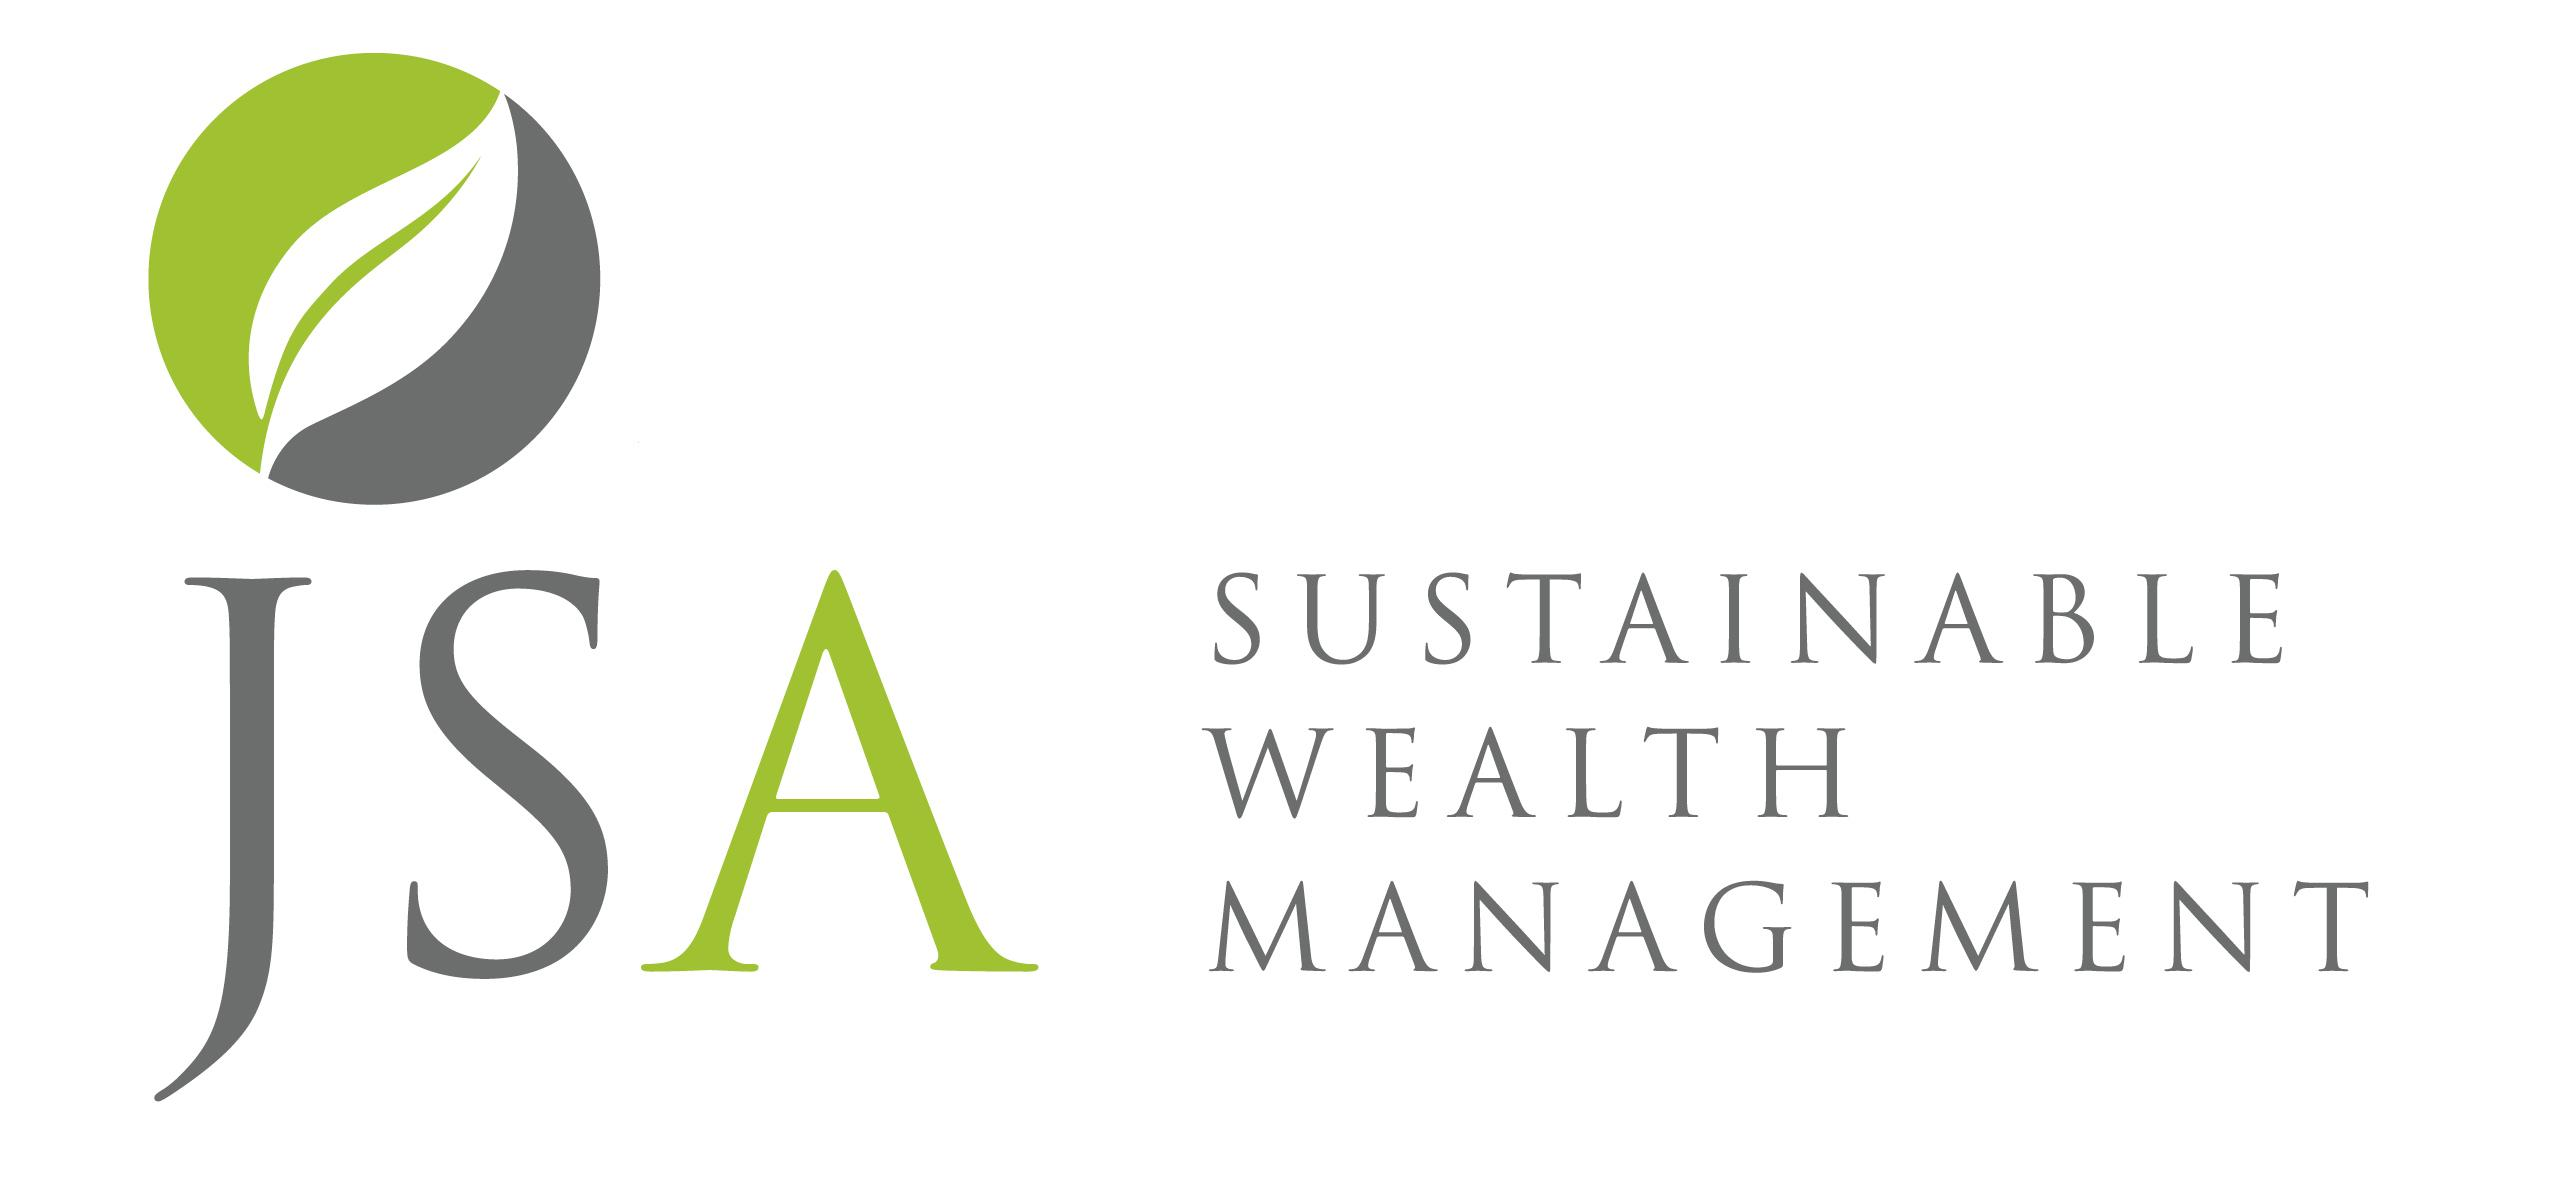 JSA Sustainable Wealth Management B Corp